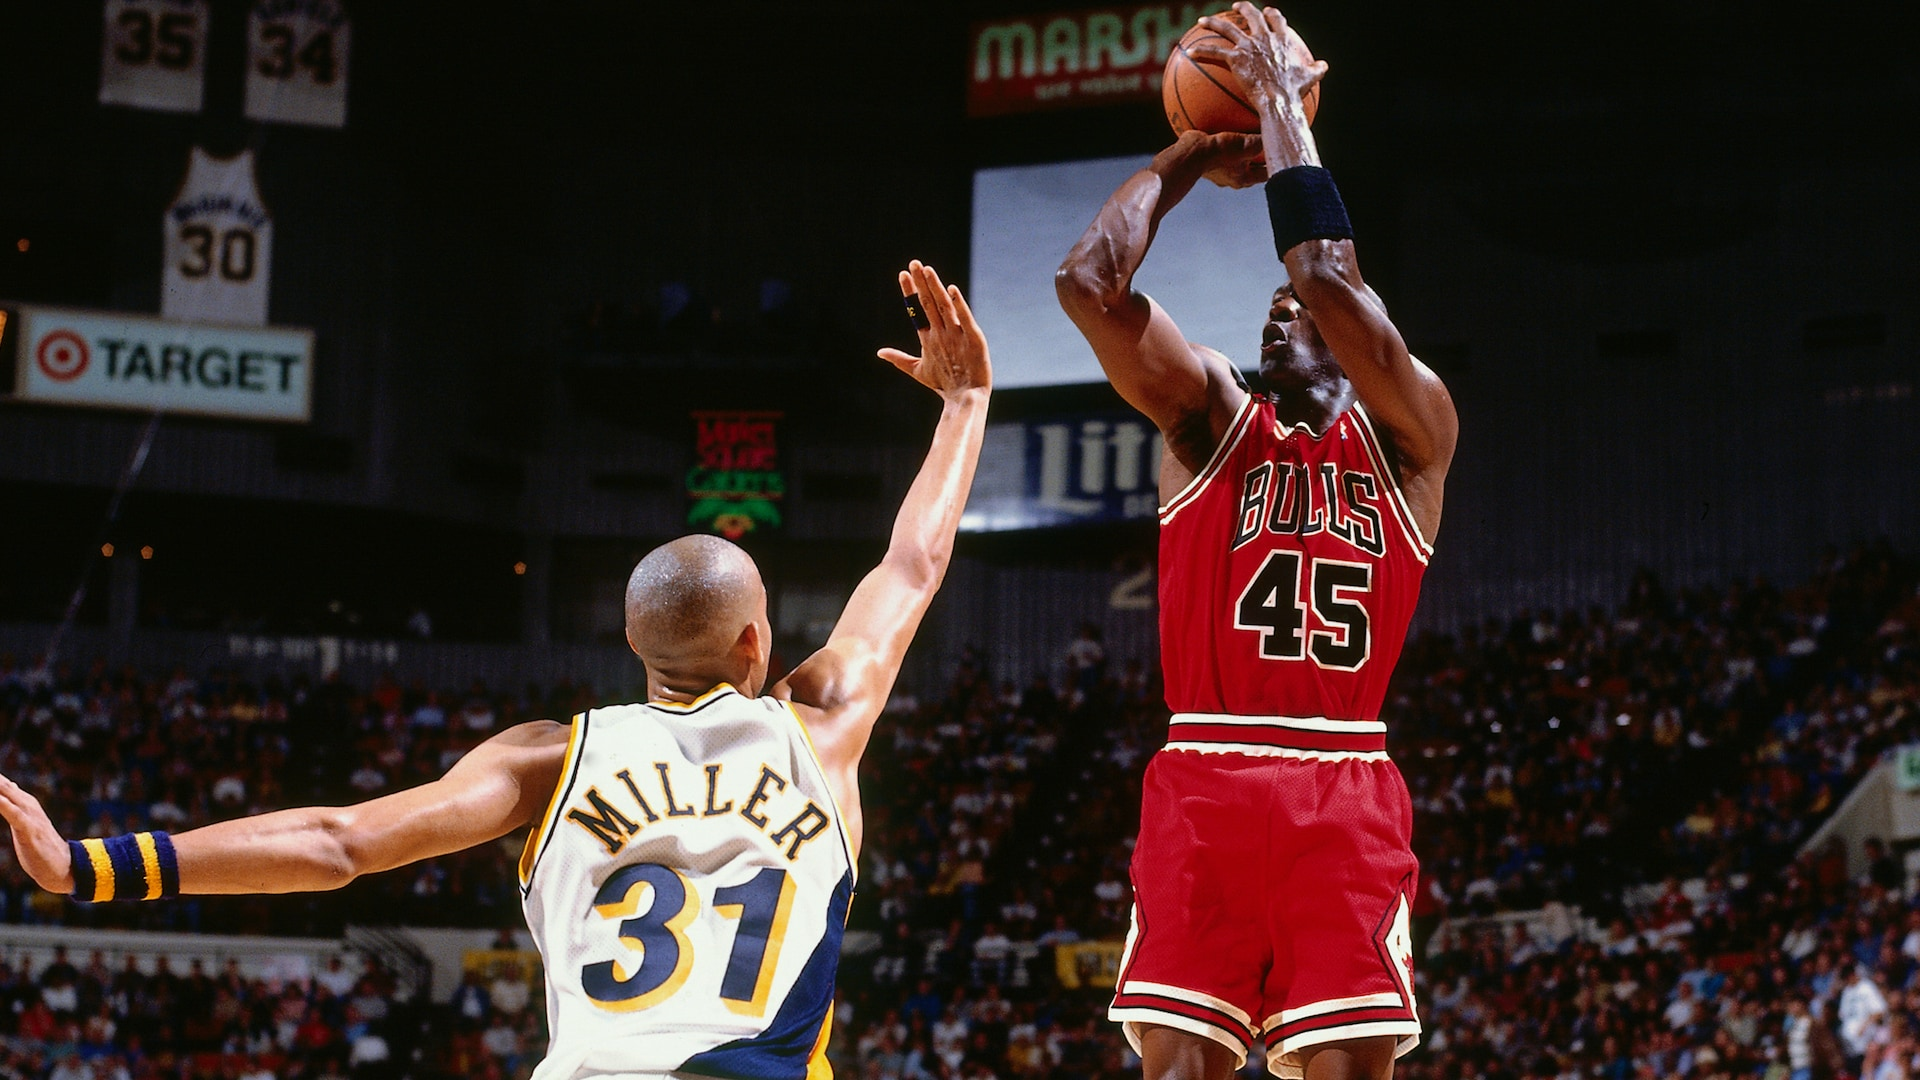 Legendary Moments: Michael Jordan returns to NBA in 1995 after 17-month retirement